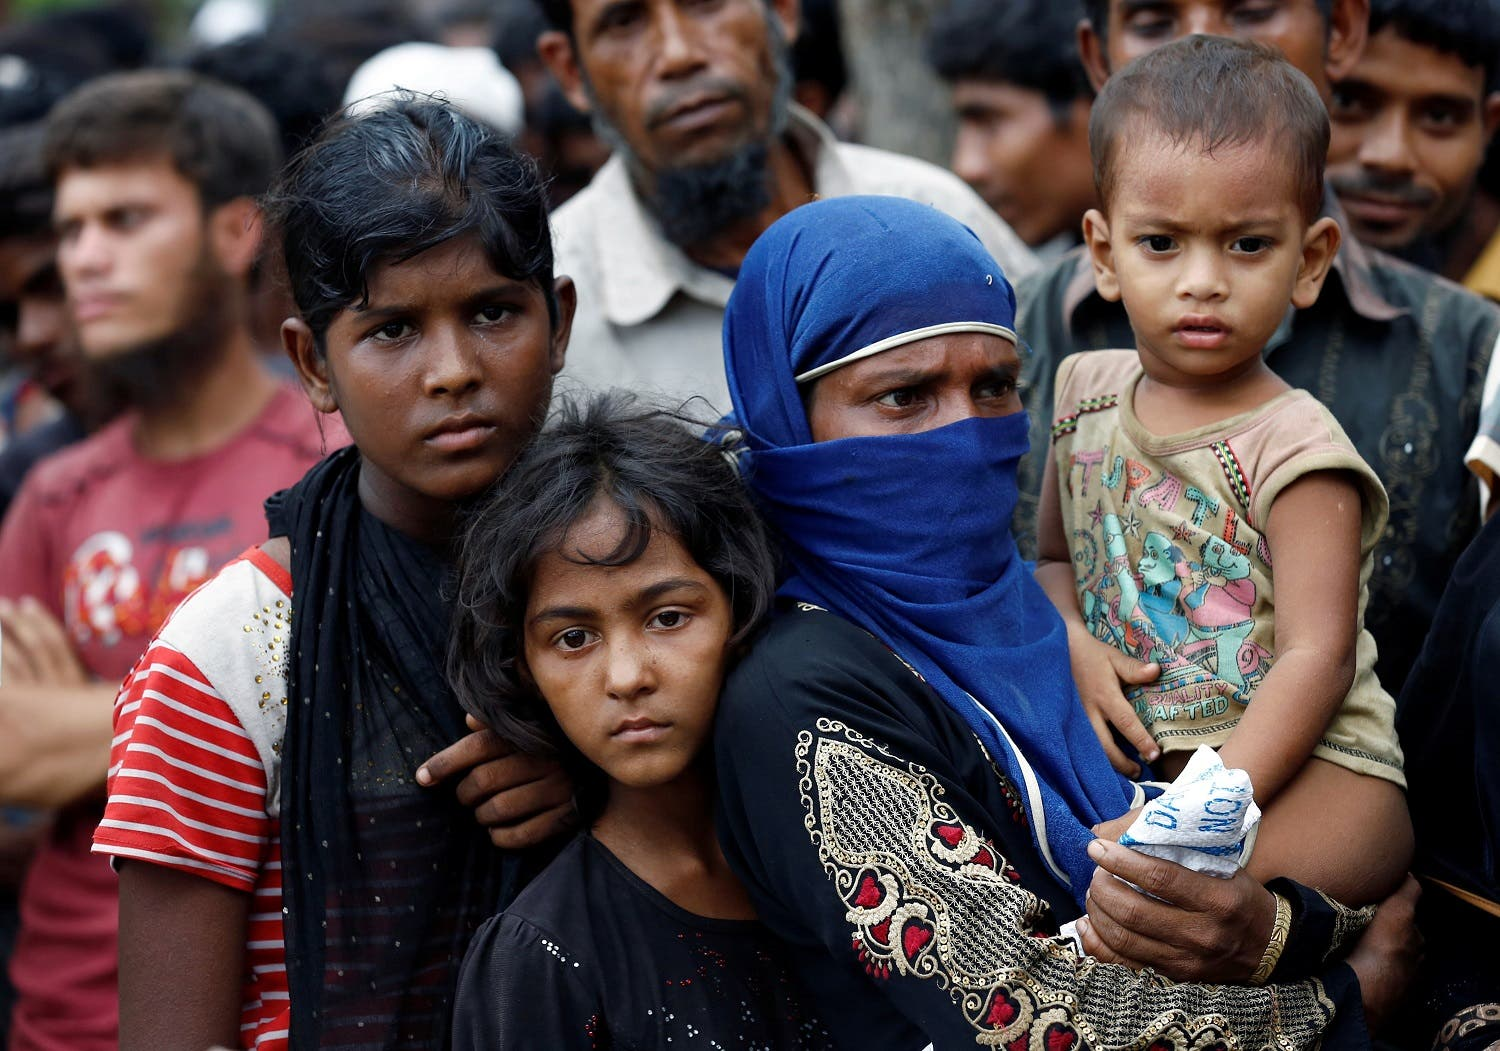 Rohingya refugees gather to collect relief supplies at the Balukhali Makeshift Refugee Camp as they are affected by Cyclone Mora in Cox's Bazar, Bangladesh May 31, 2017. REUTERS/Mohammad Ponir Hossain